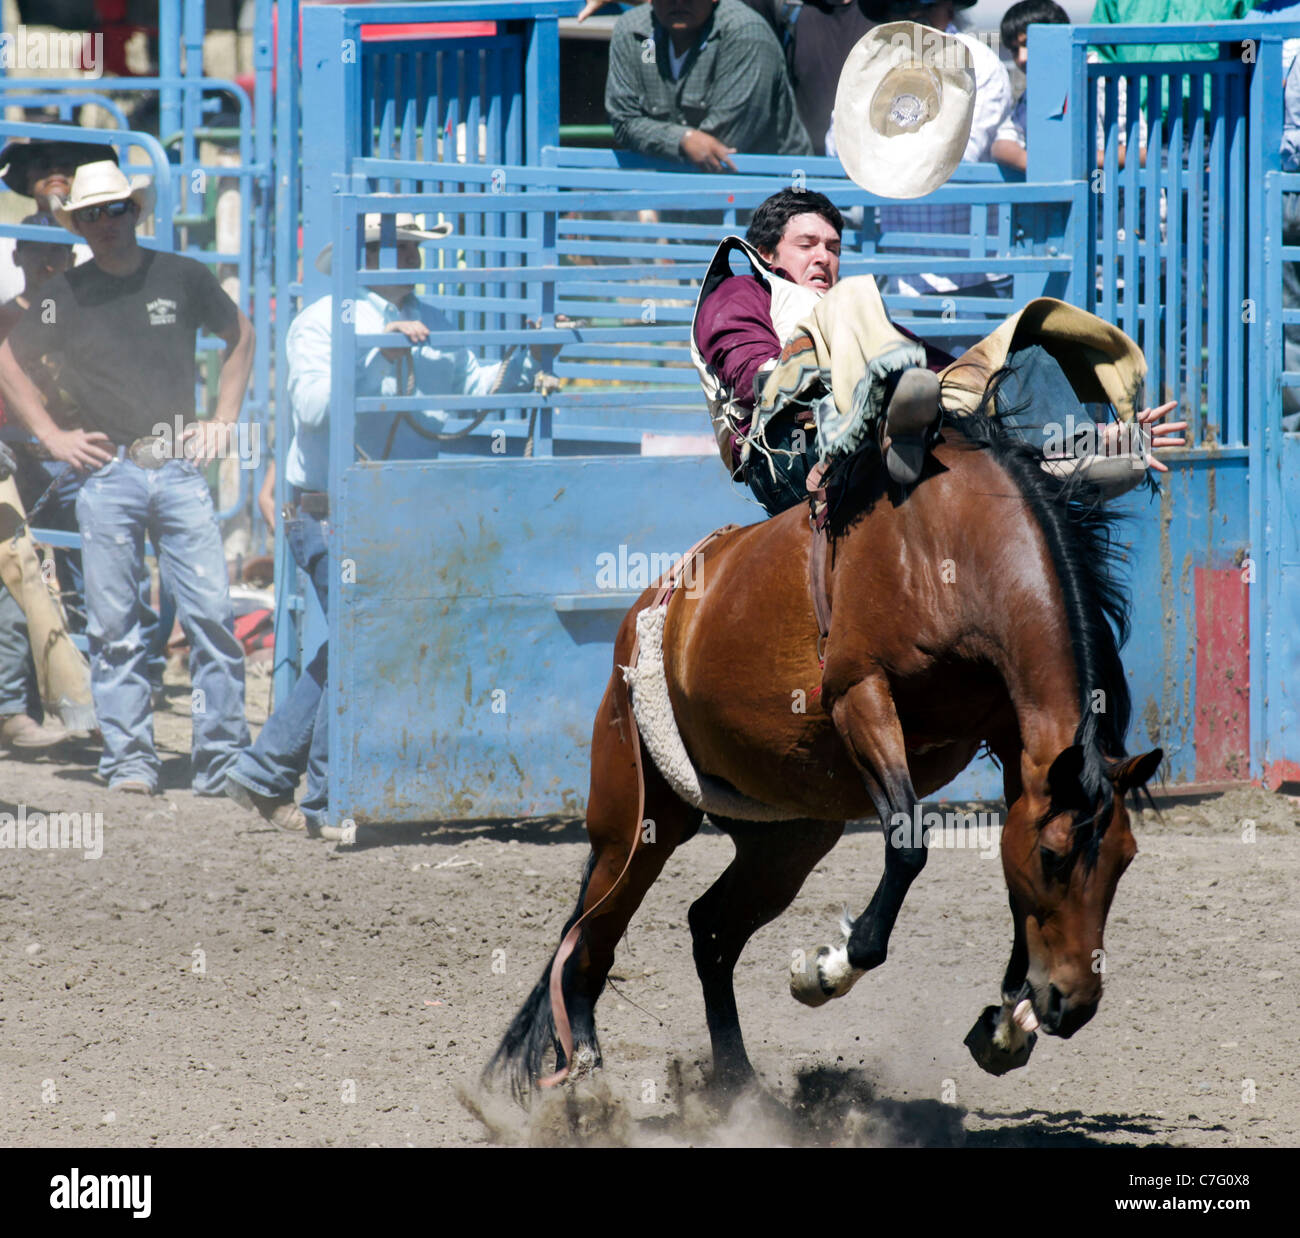 Competitor in the bronco riding event of the rodeo held on the Fort Hall reservation in Idaho - Stock Image